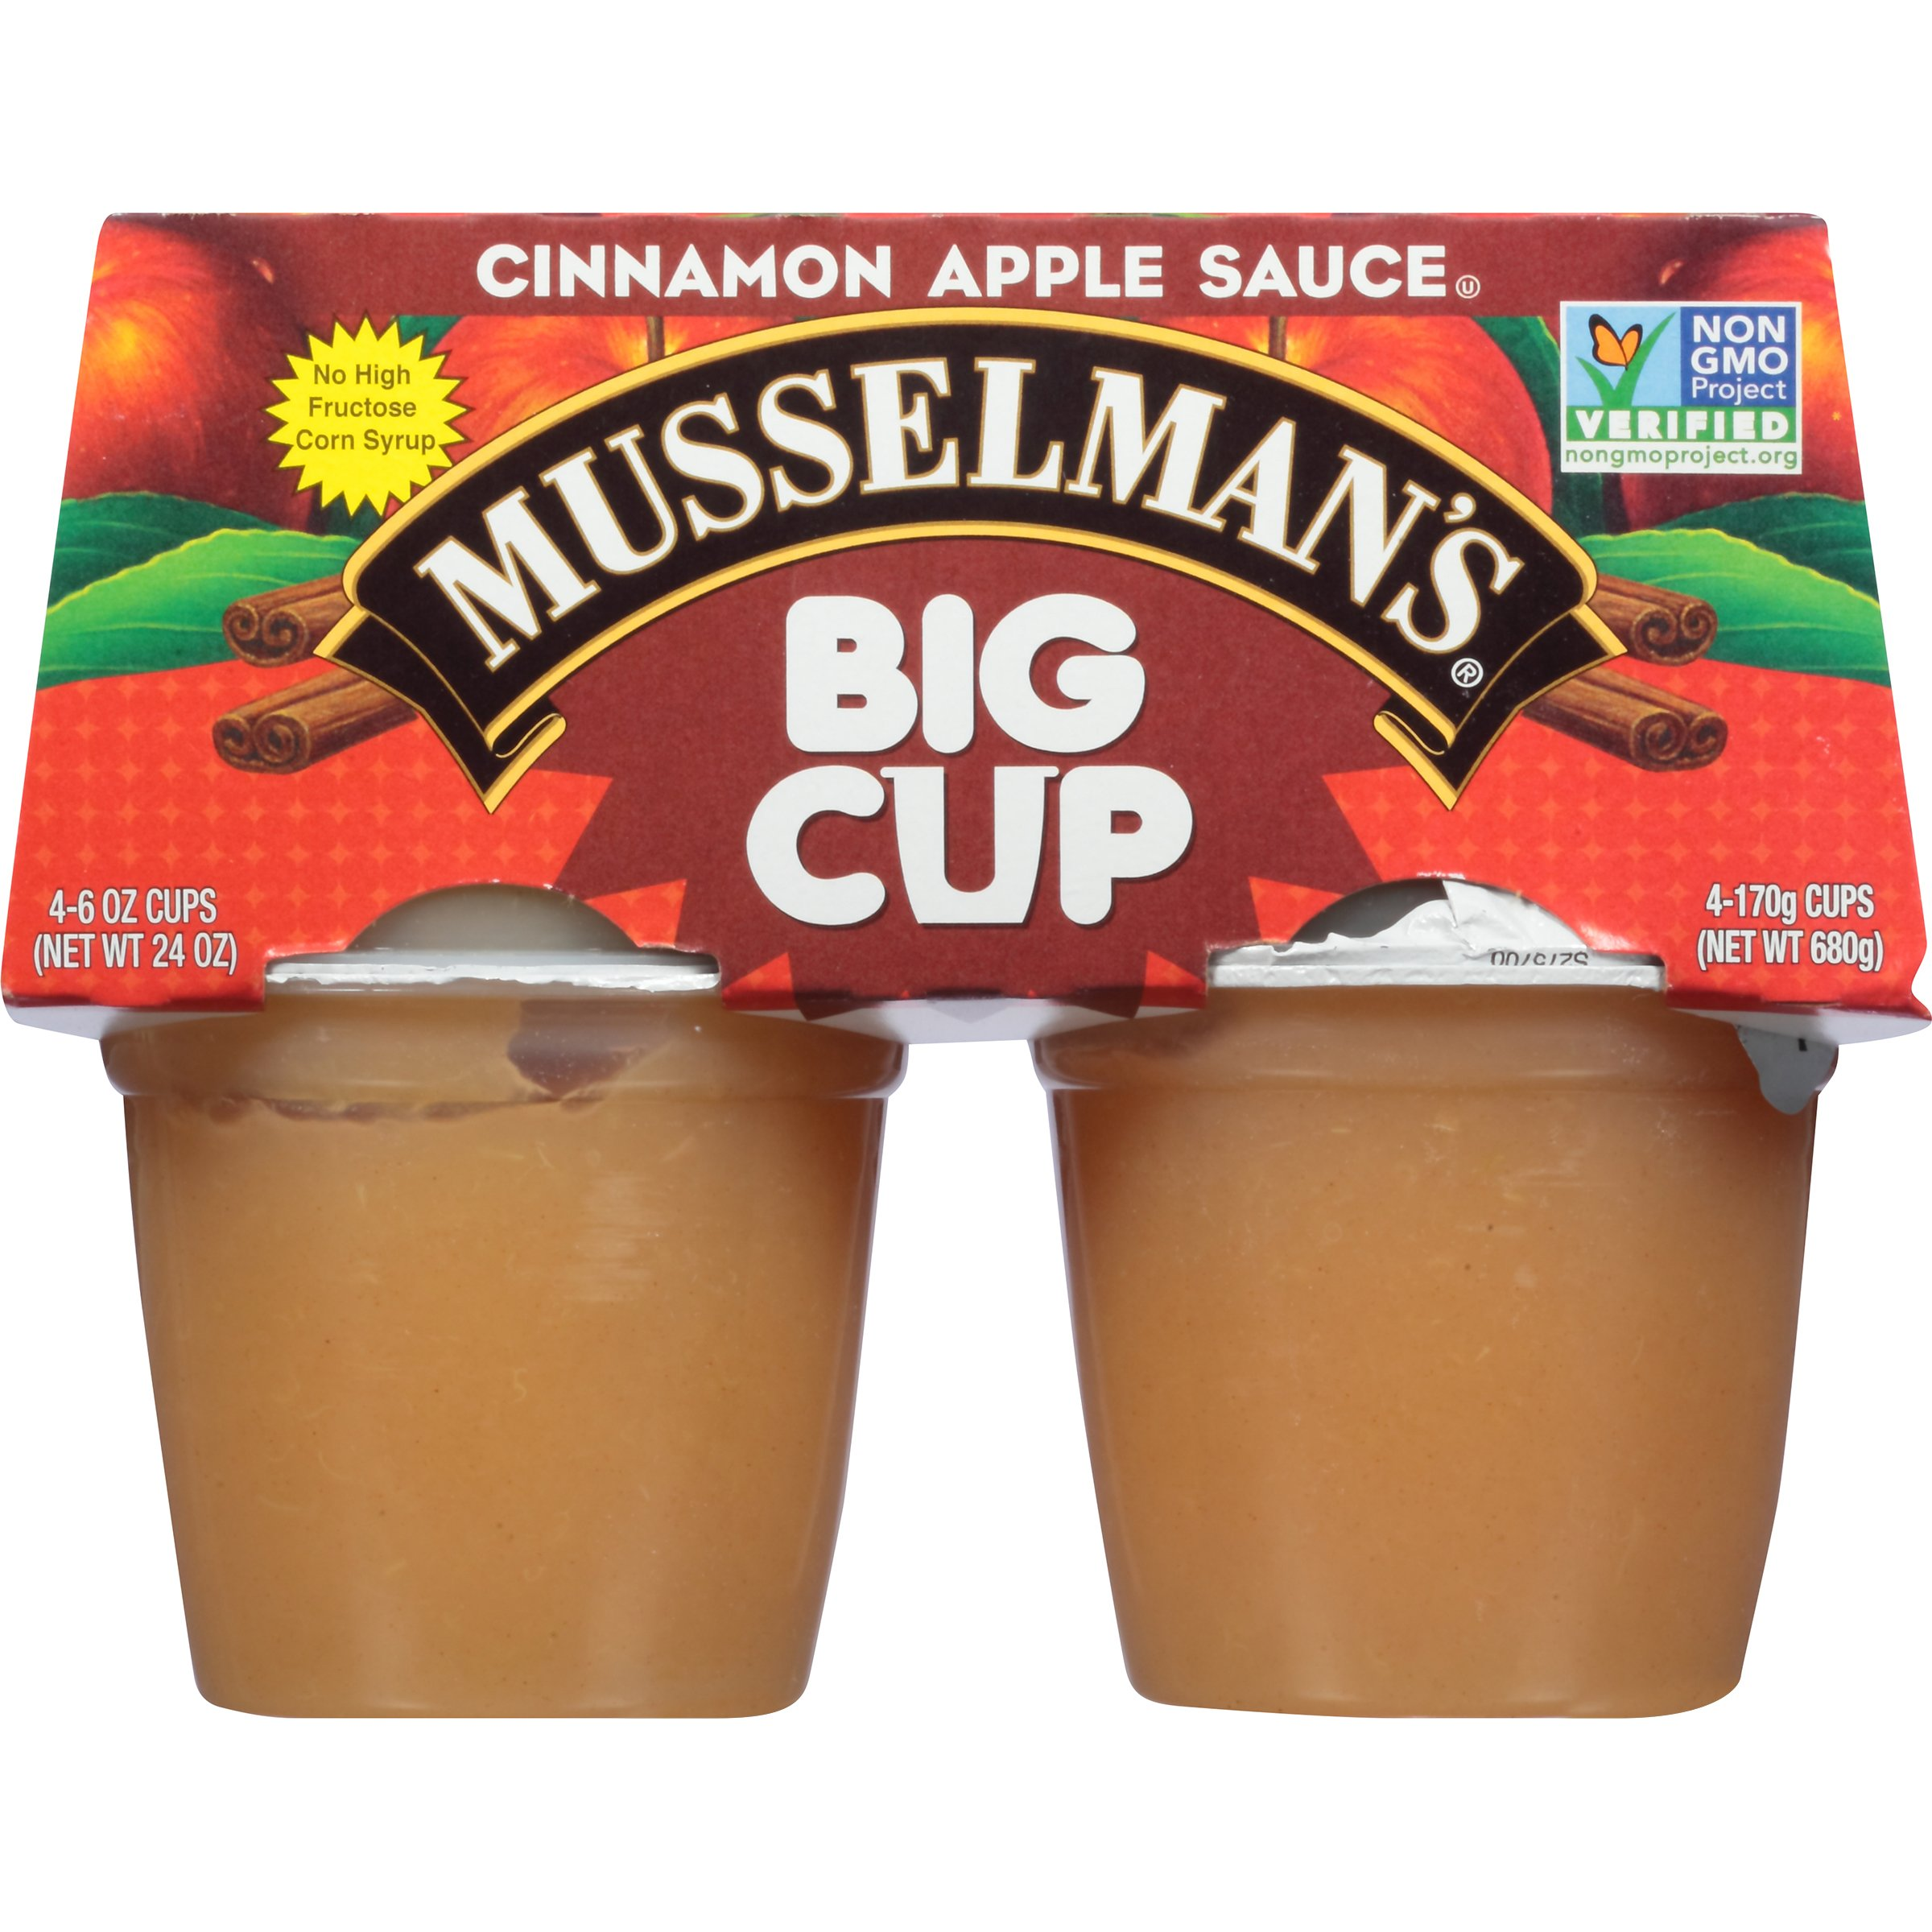 Musselman's Big Cup Cinnamon Apple Sauce, 6 Ounce (Pack of 12) by Musselmans (Image #4)